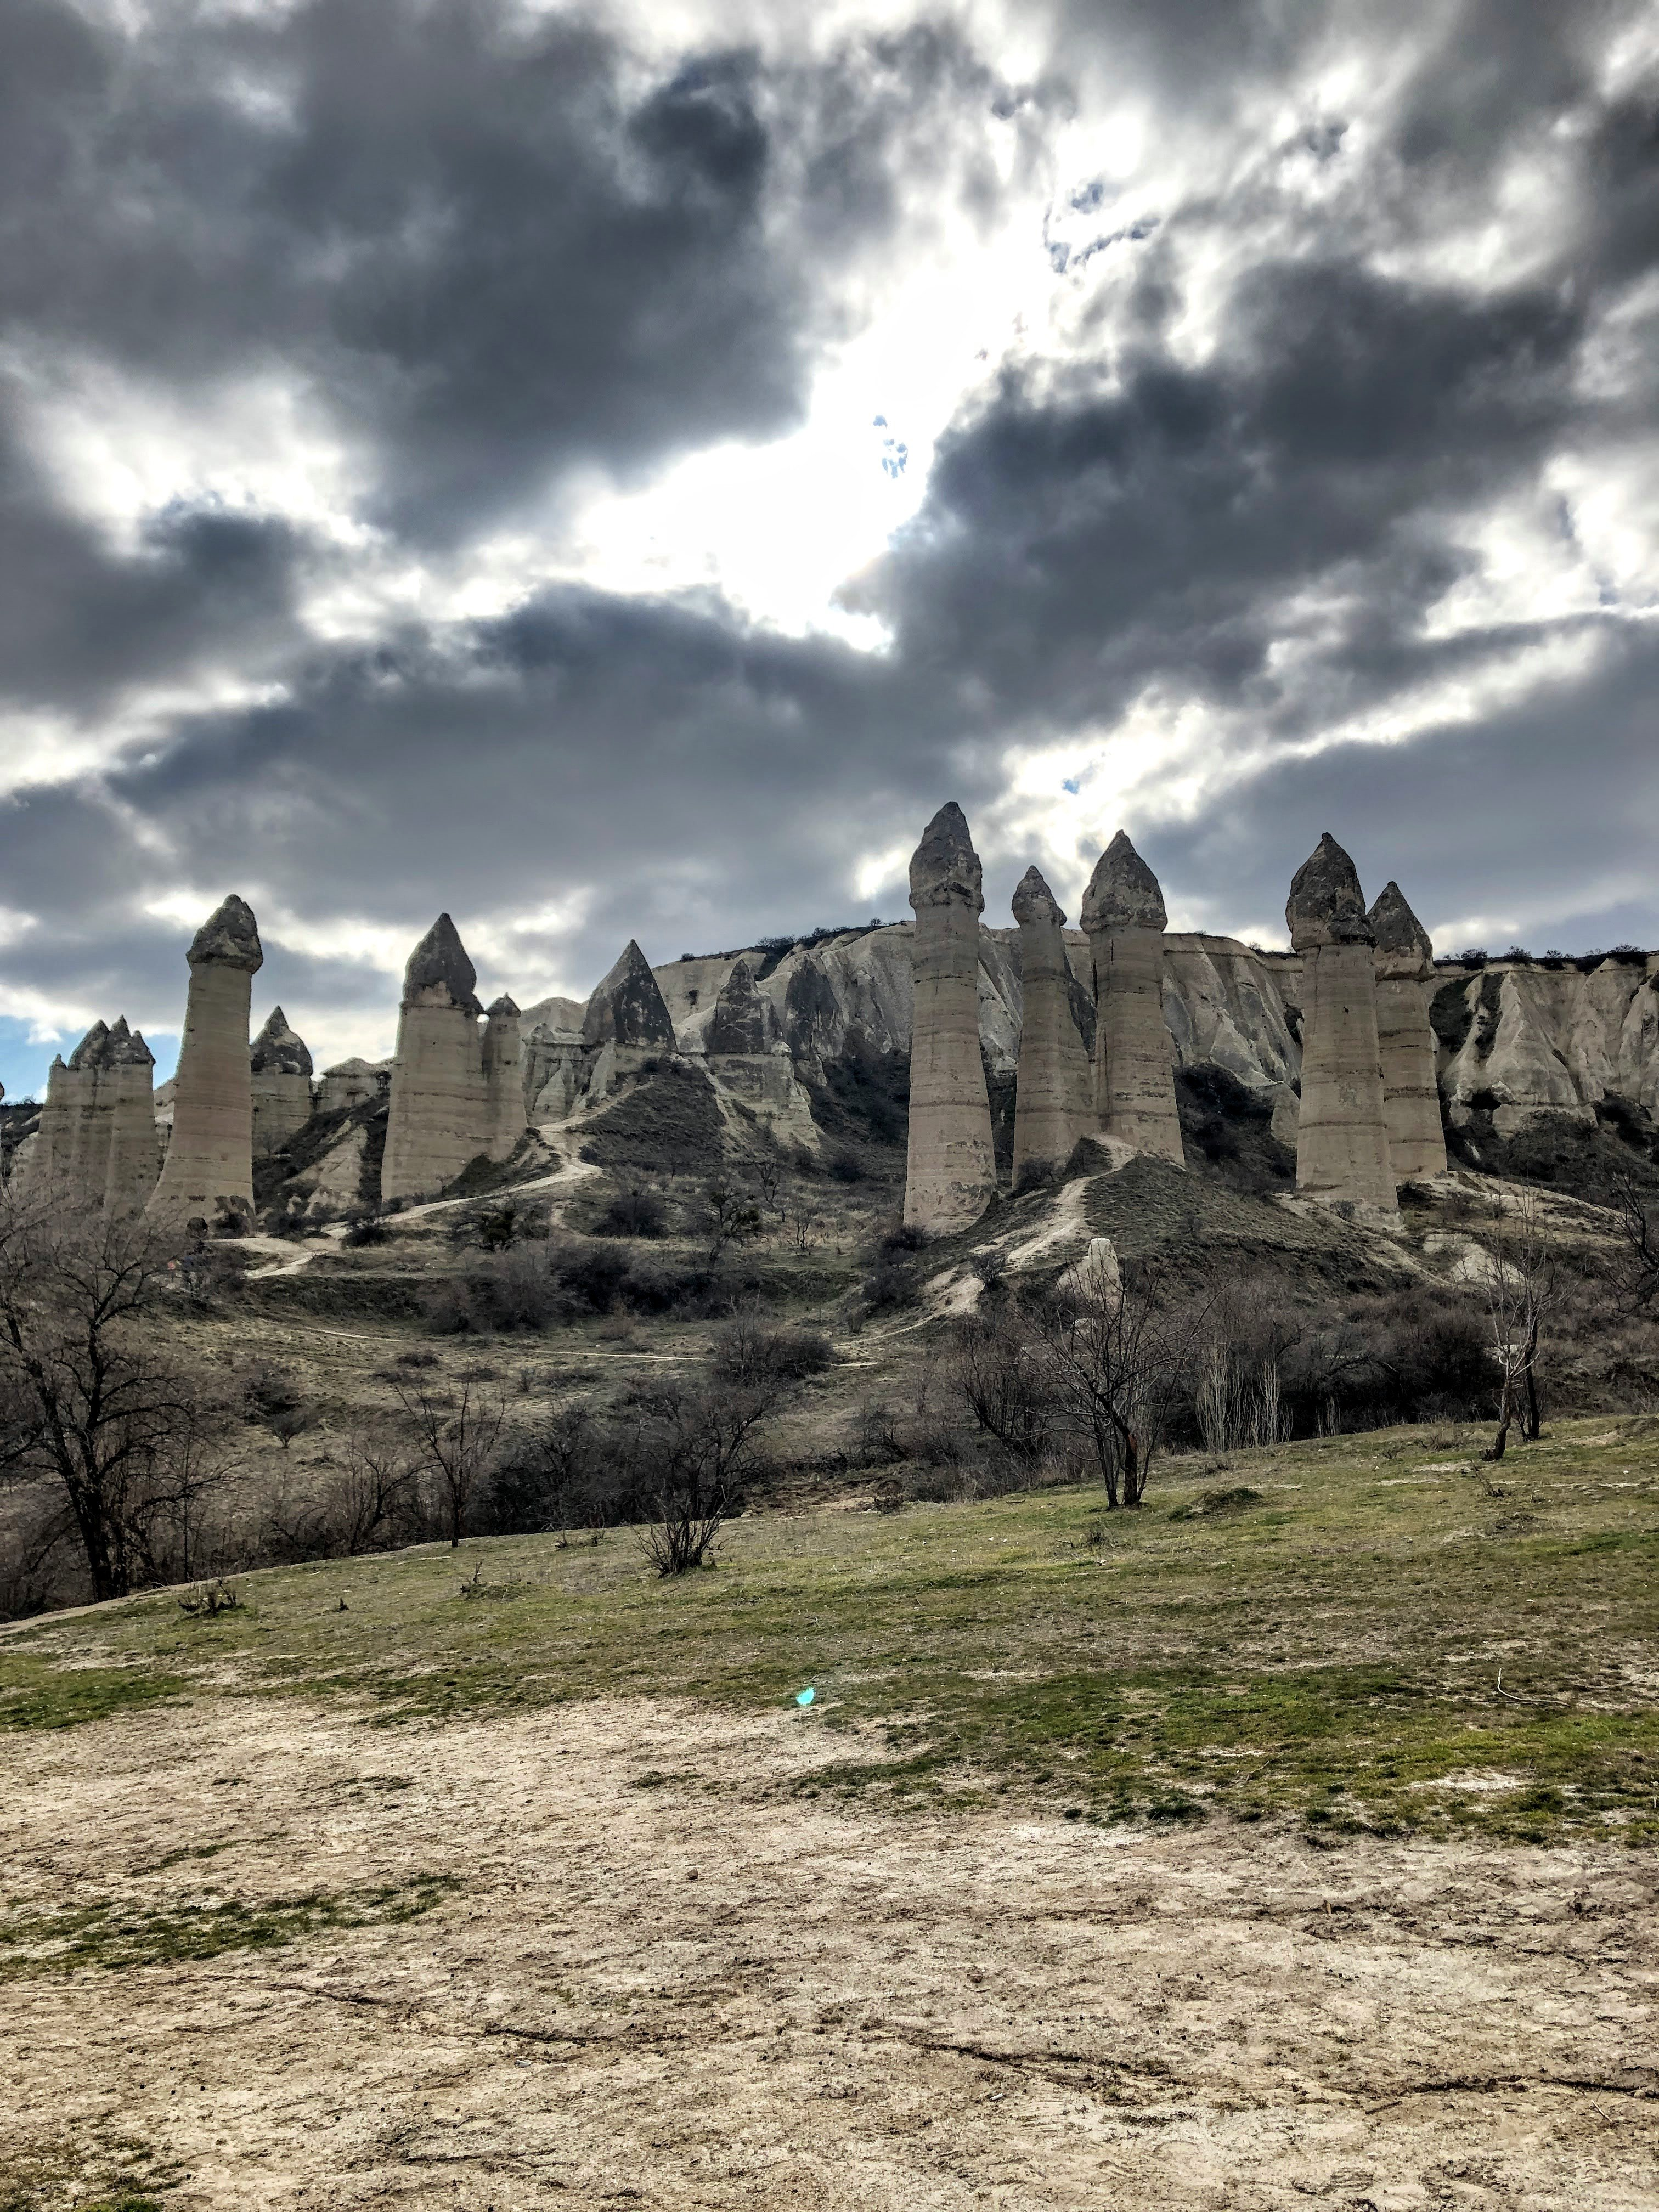 phallic rocks in Love Valley, Cappadocia